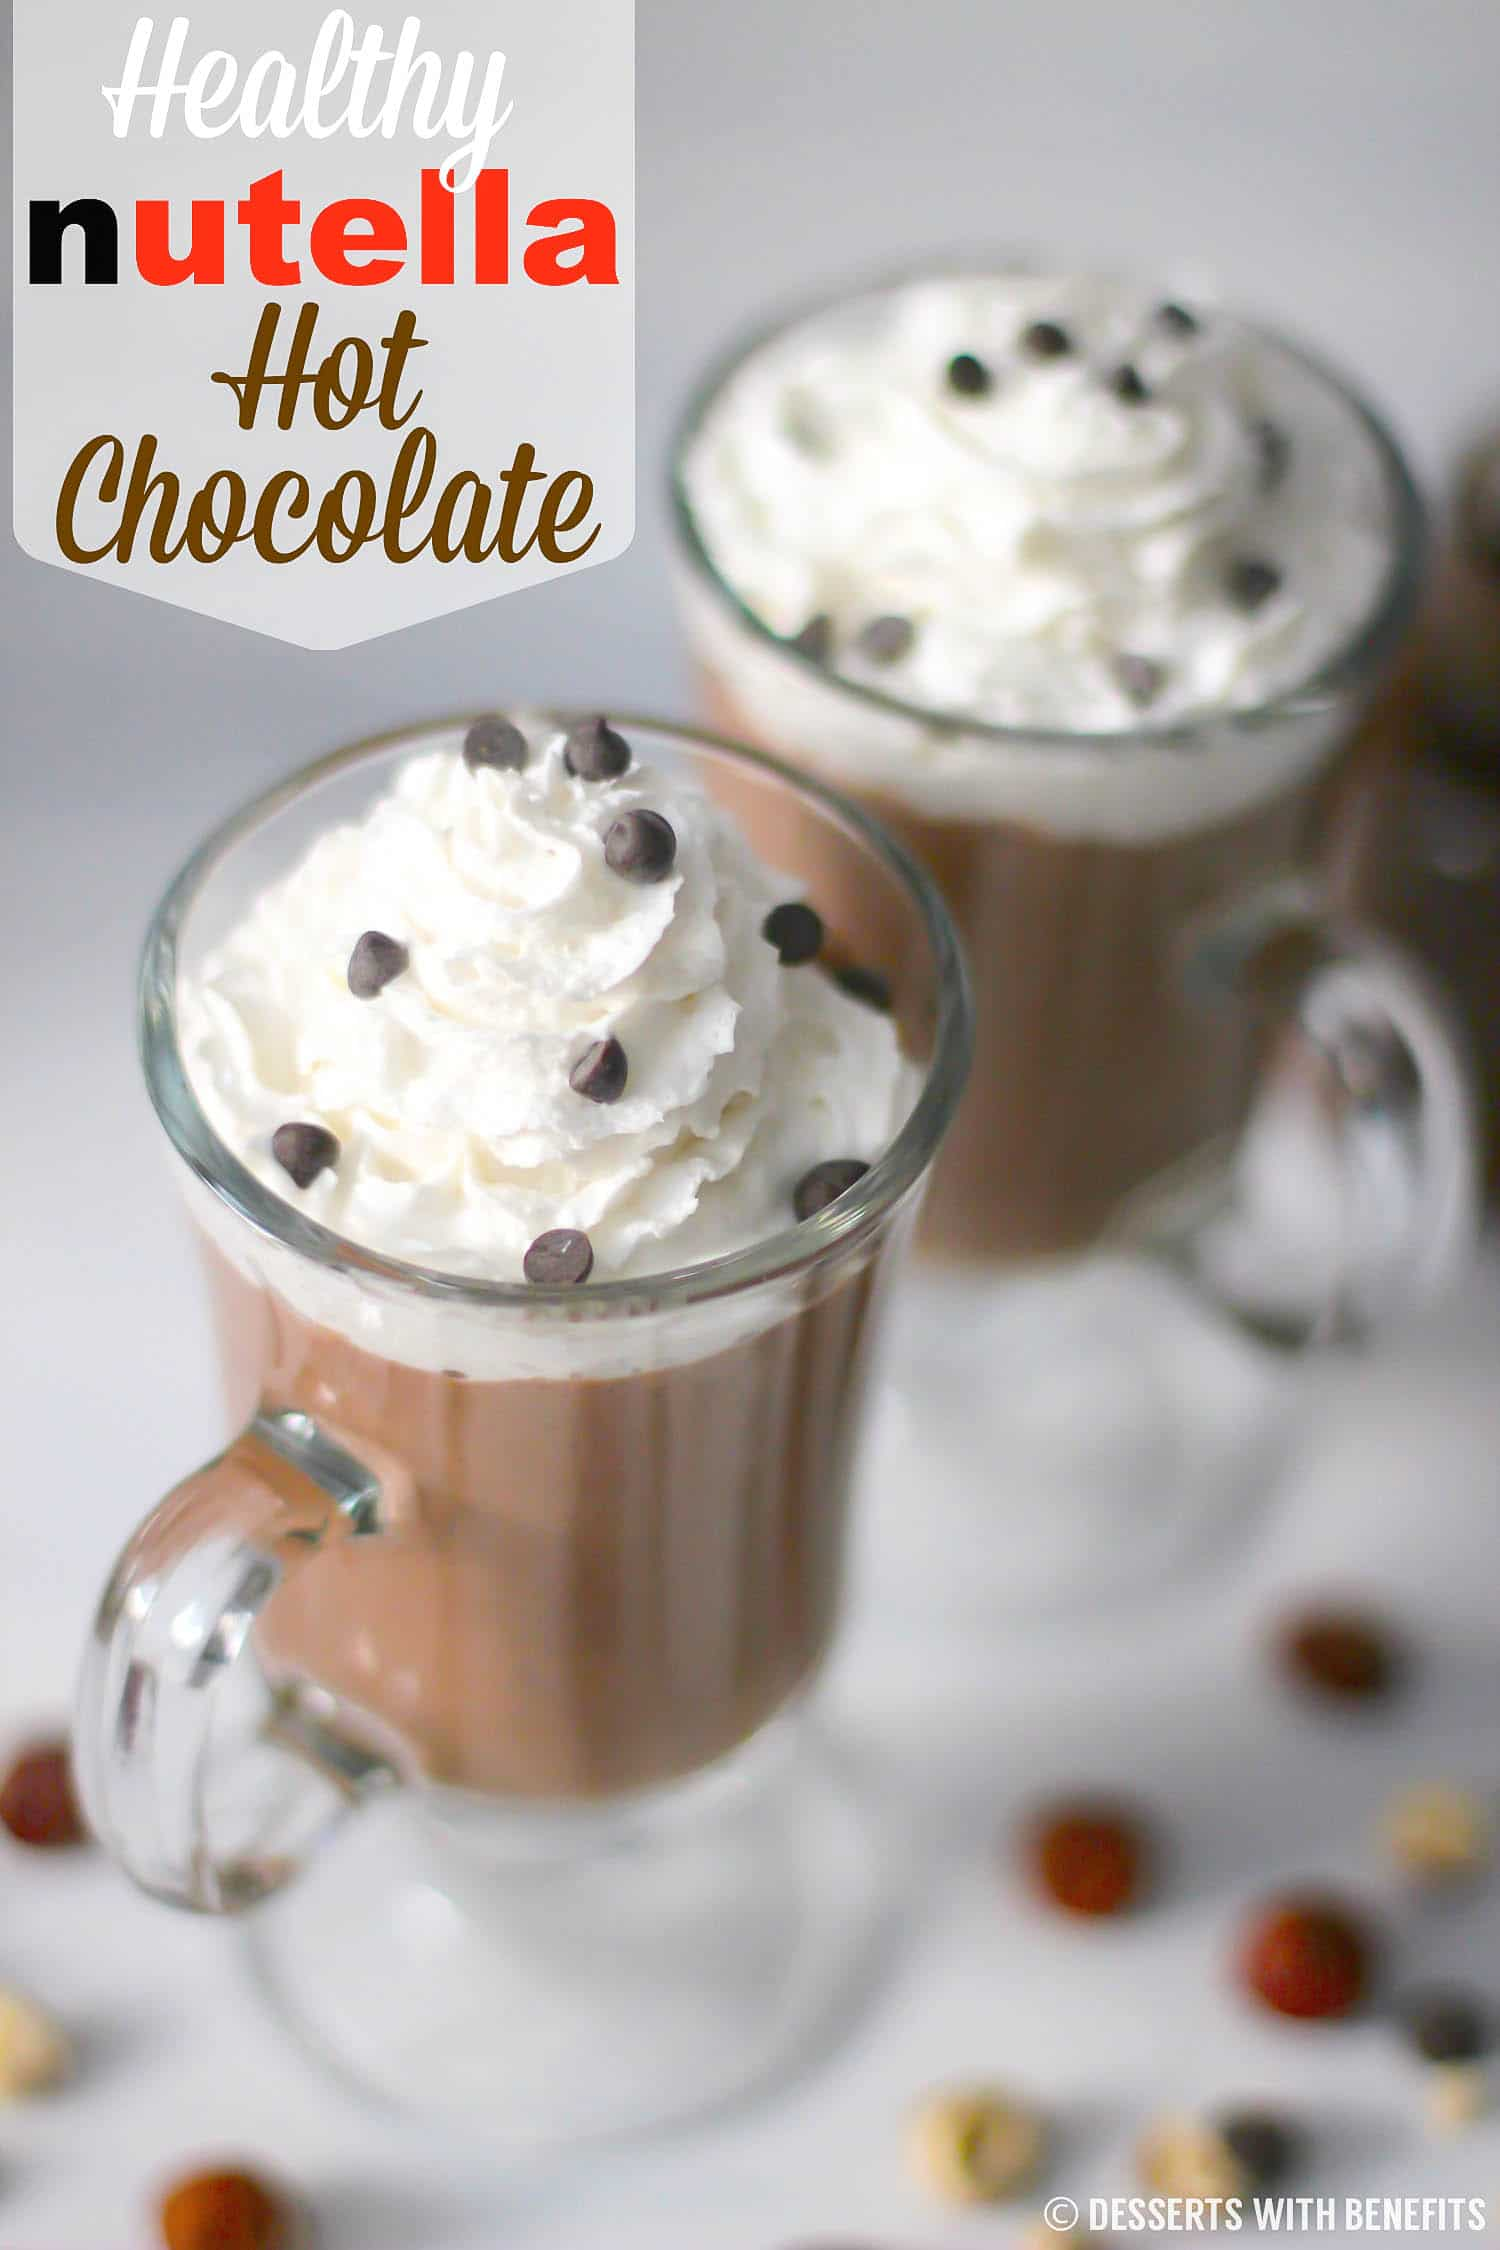 Healthy Nutella Hot Chocolate recipe (sugar free, vegan) - Healthy Dessert Recipes at Desserts with Benefits